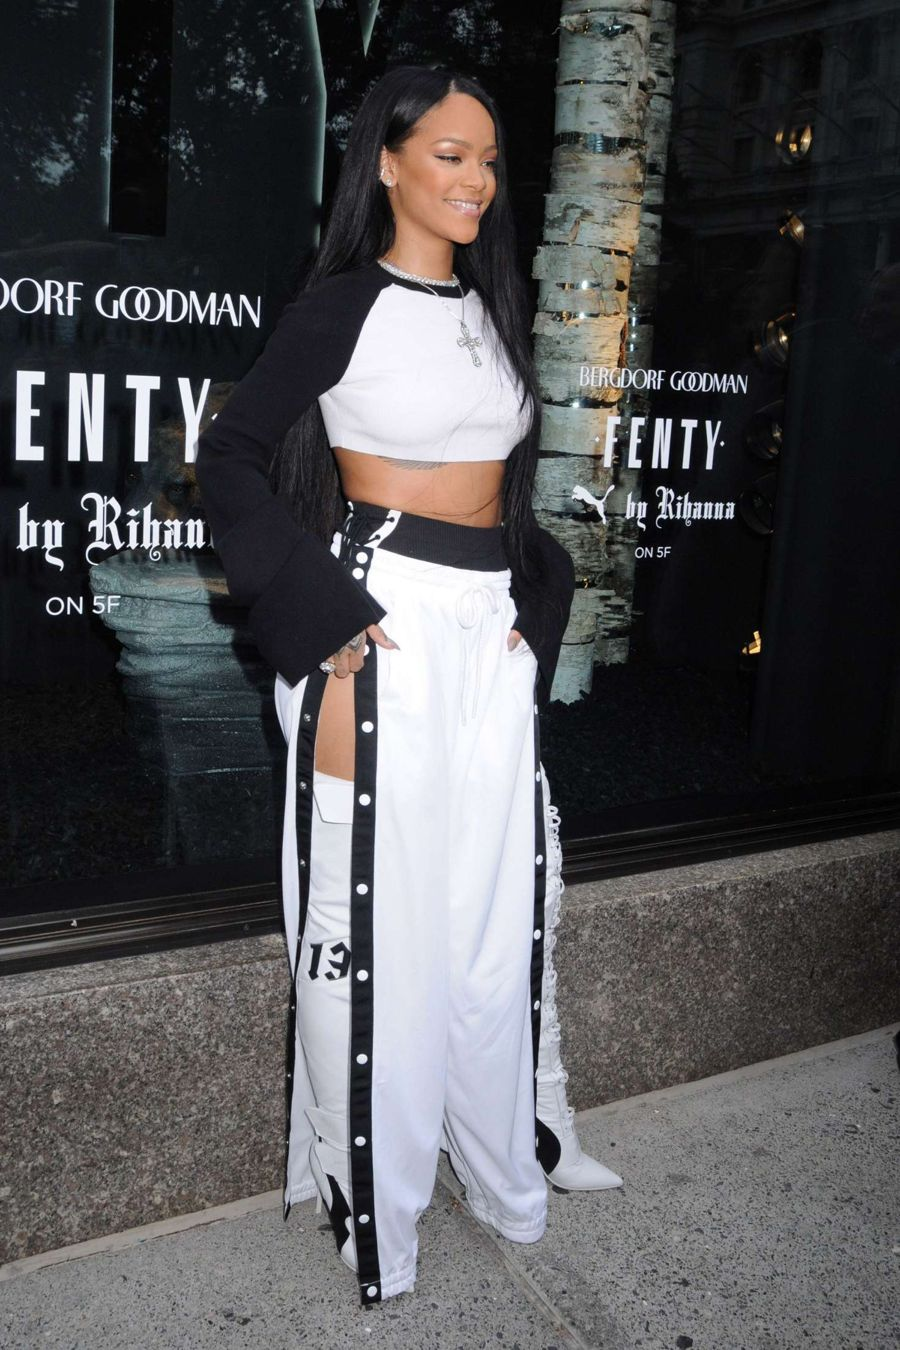 Rihanna - FENTY PUMA x RIHANNA Debut in New York